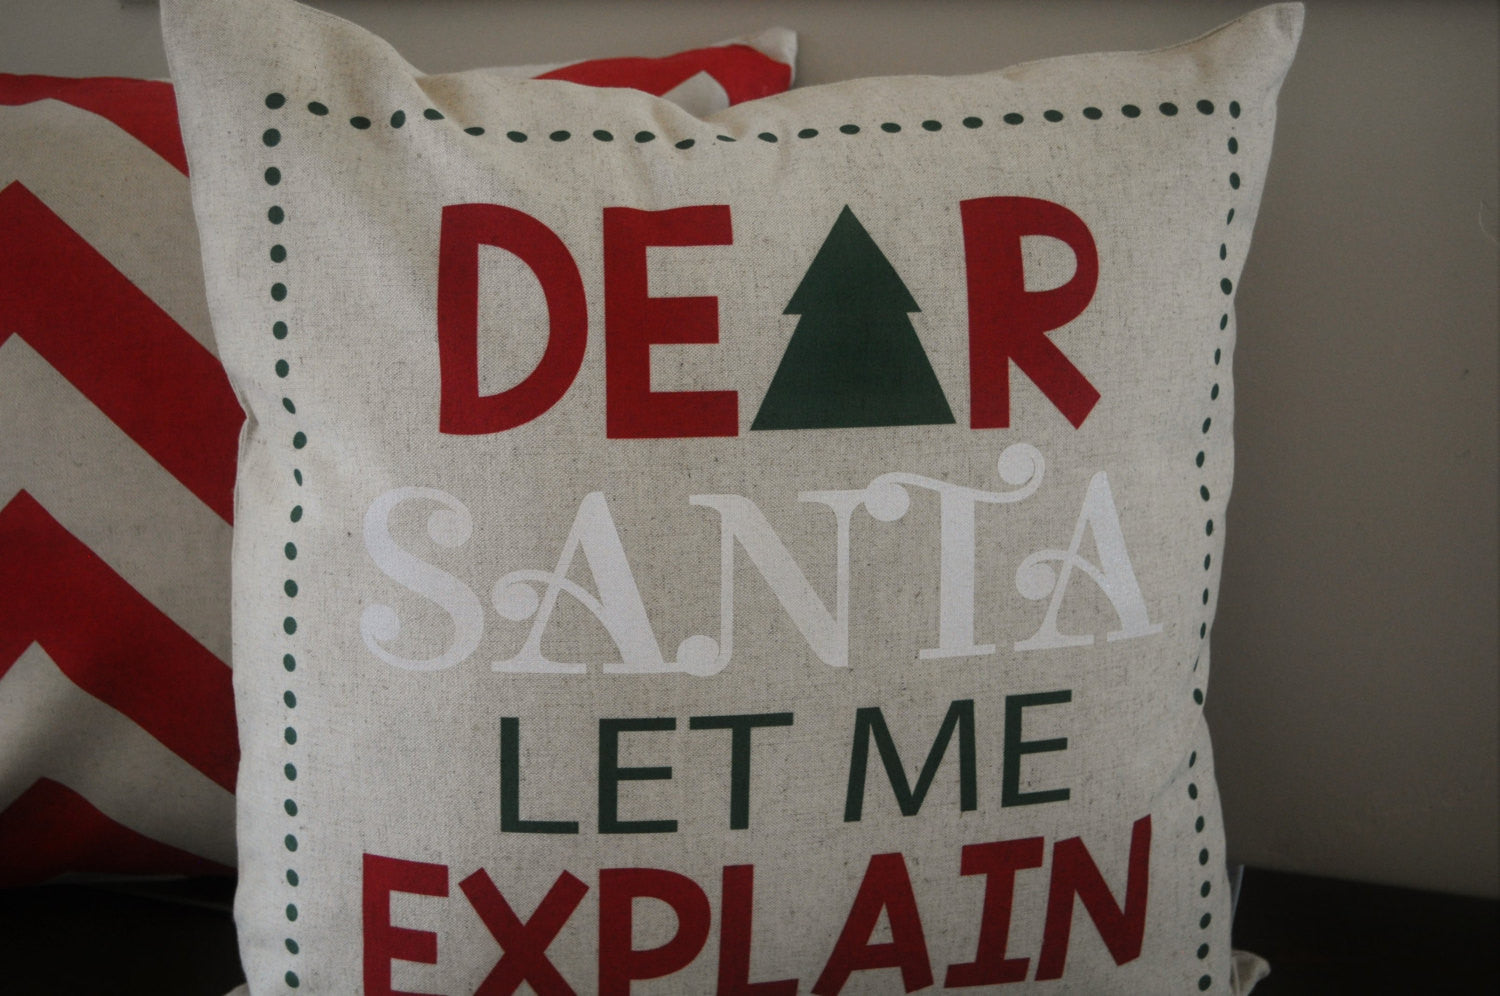 Christmas pillow cover, Christmas decor, Dear Santa I can Explain, Merry Christmas pillow, 18x18 - Our Traditions Boutique - 2